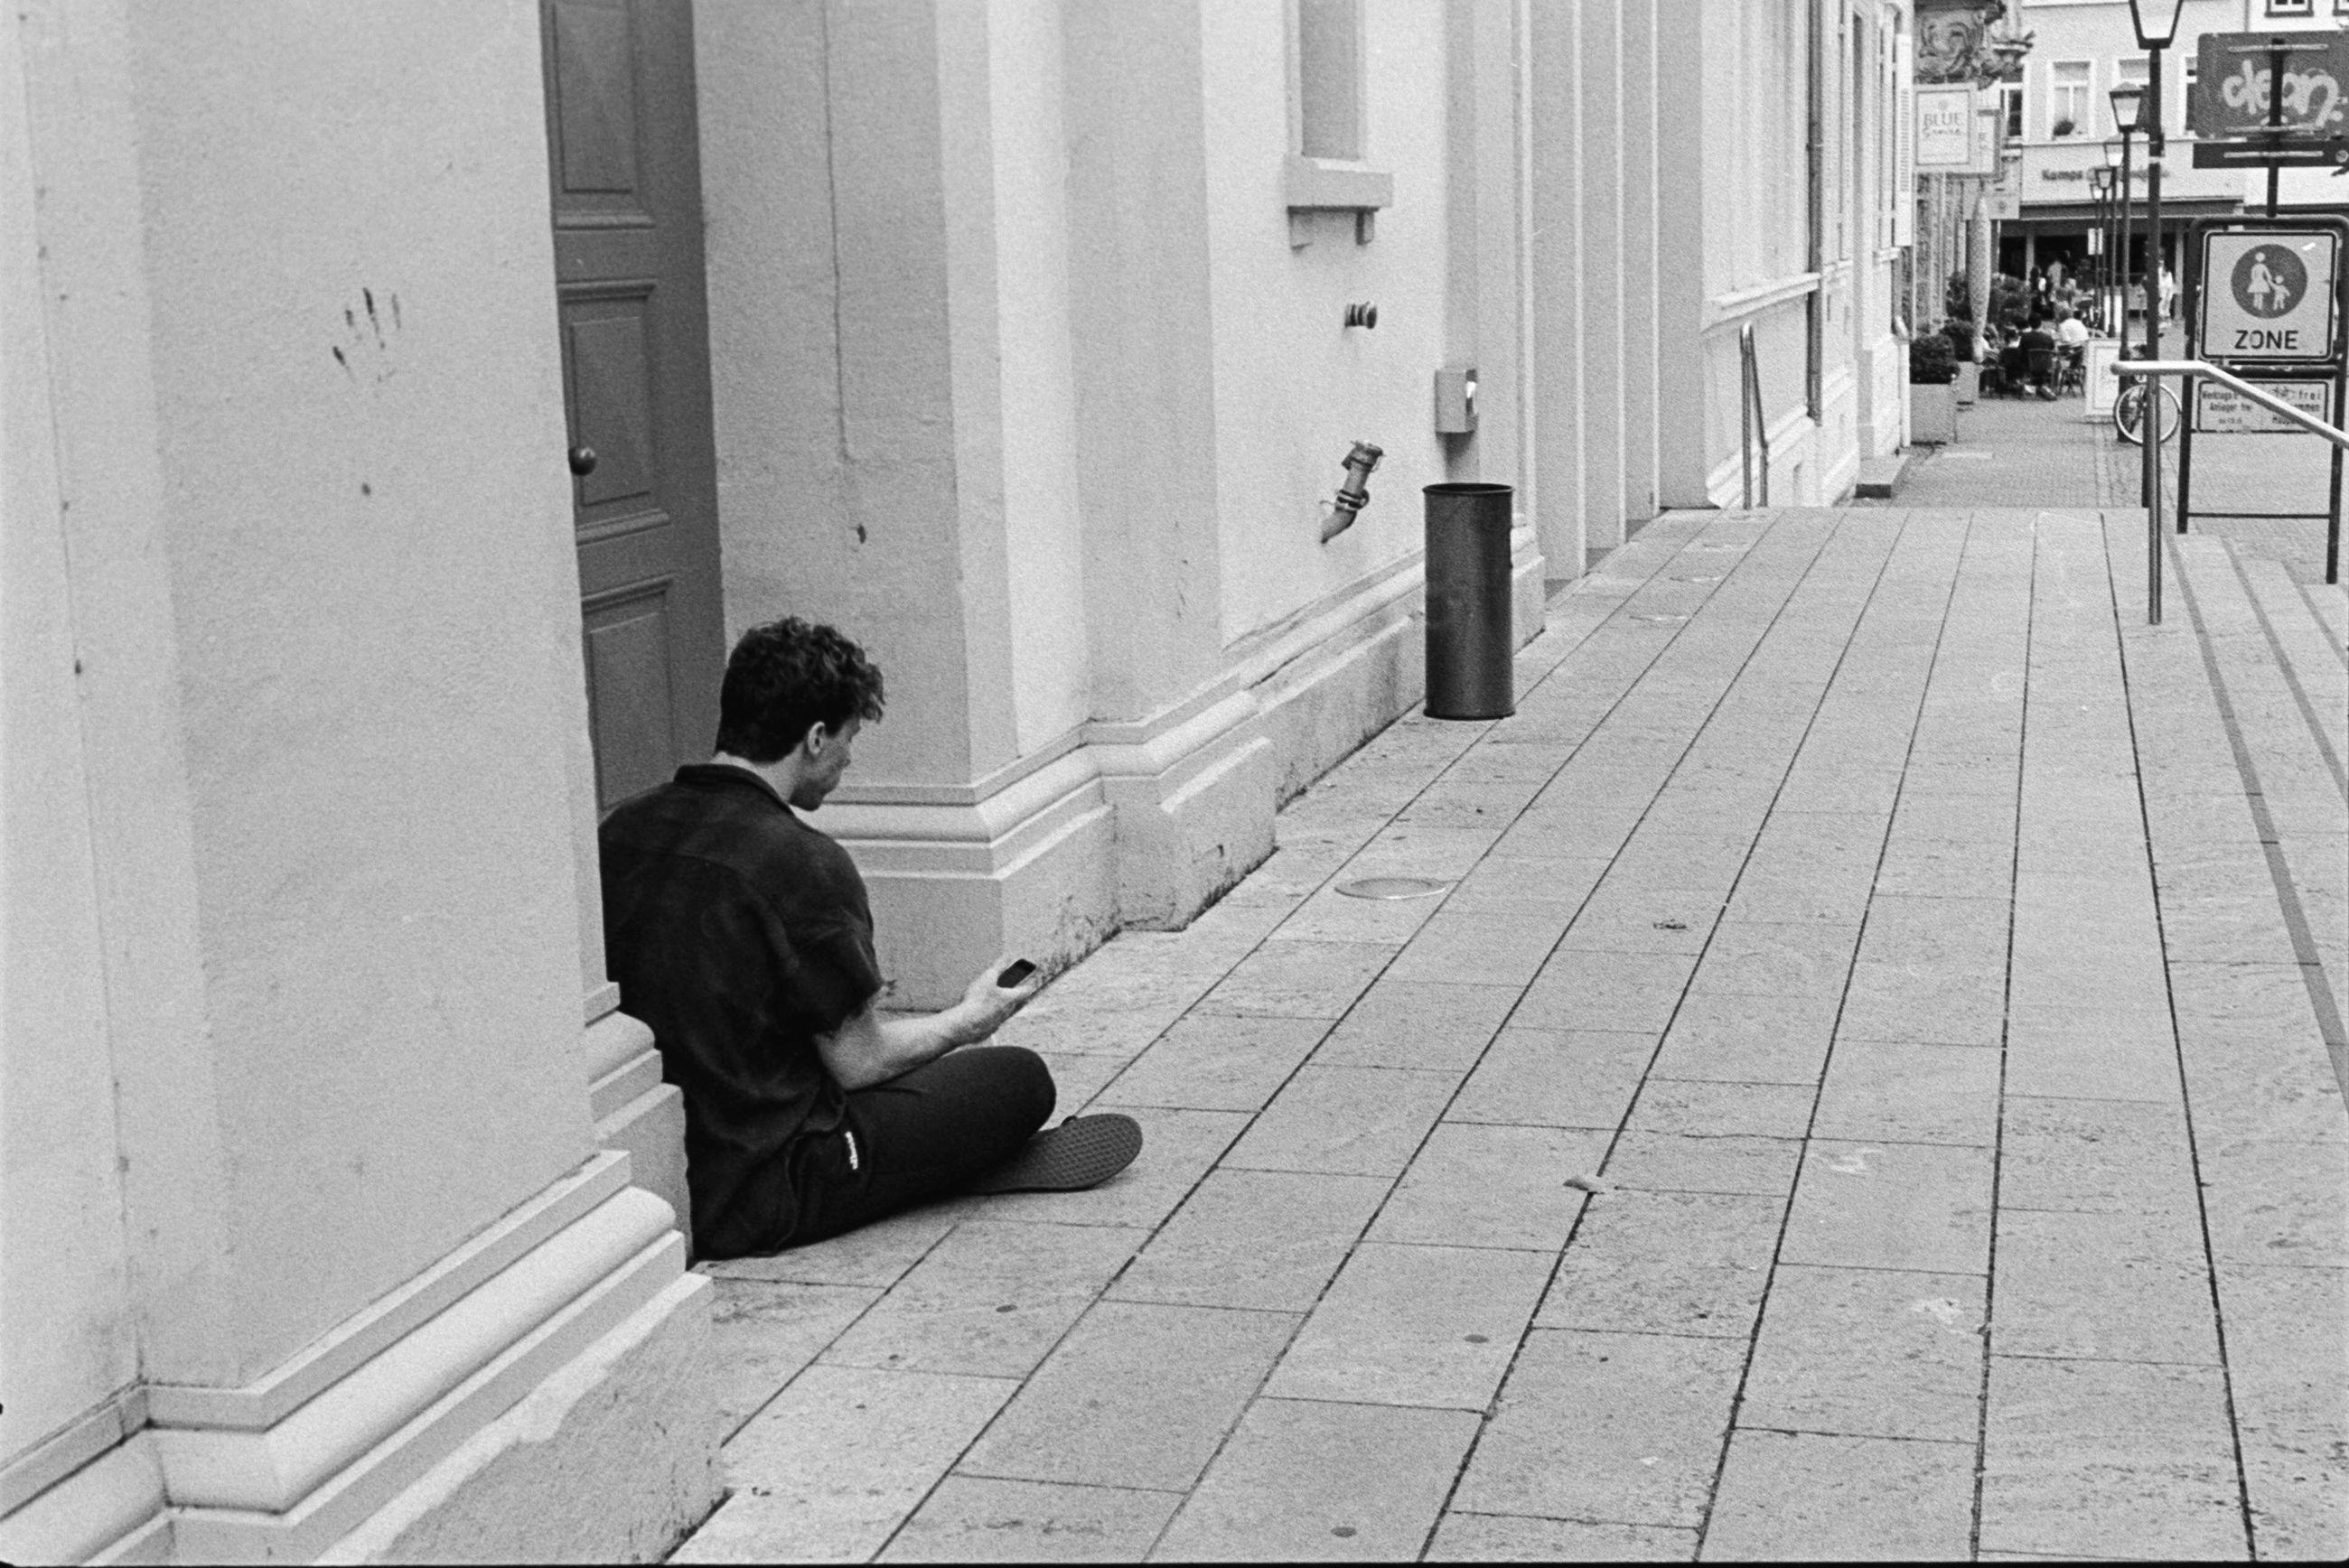 sitting, one person, men, full length, real people, architecture, building exterior, city, built structure, lifestyles, day, social issues, side view, leisure activity, footpath, casual clothing, relaxation, sidewalk, paving stone